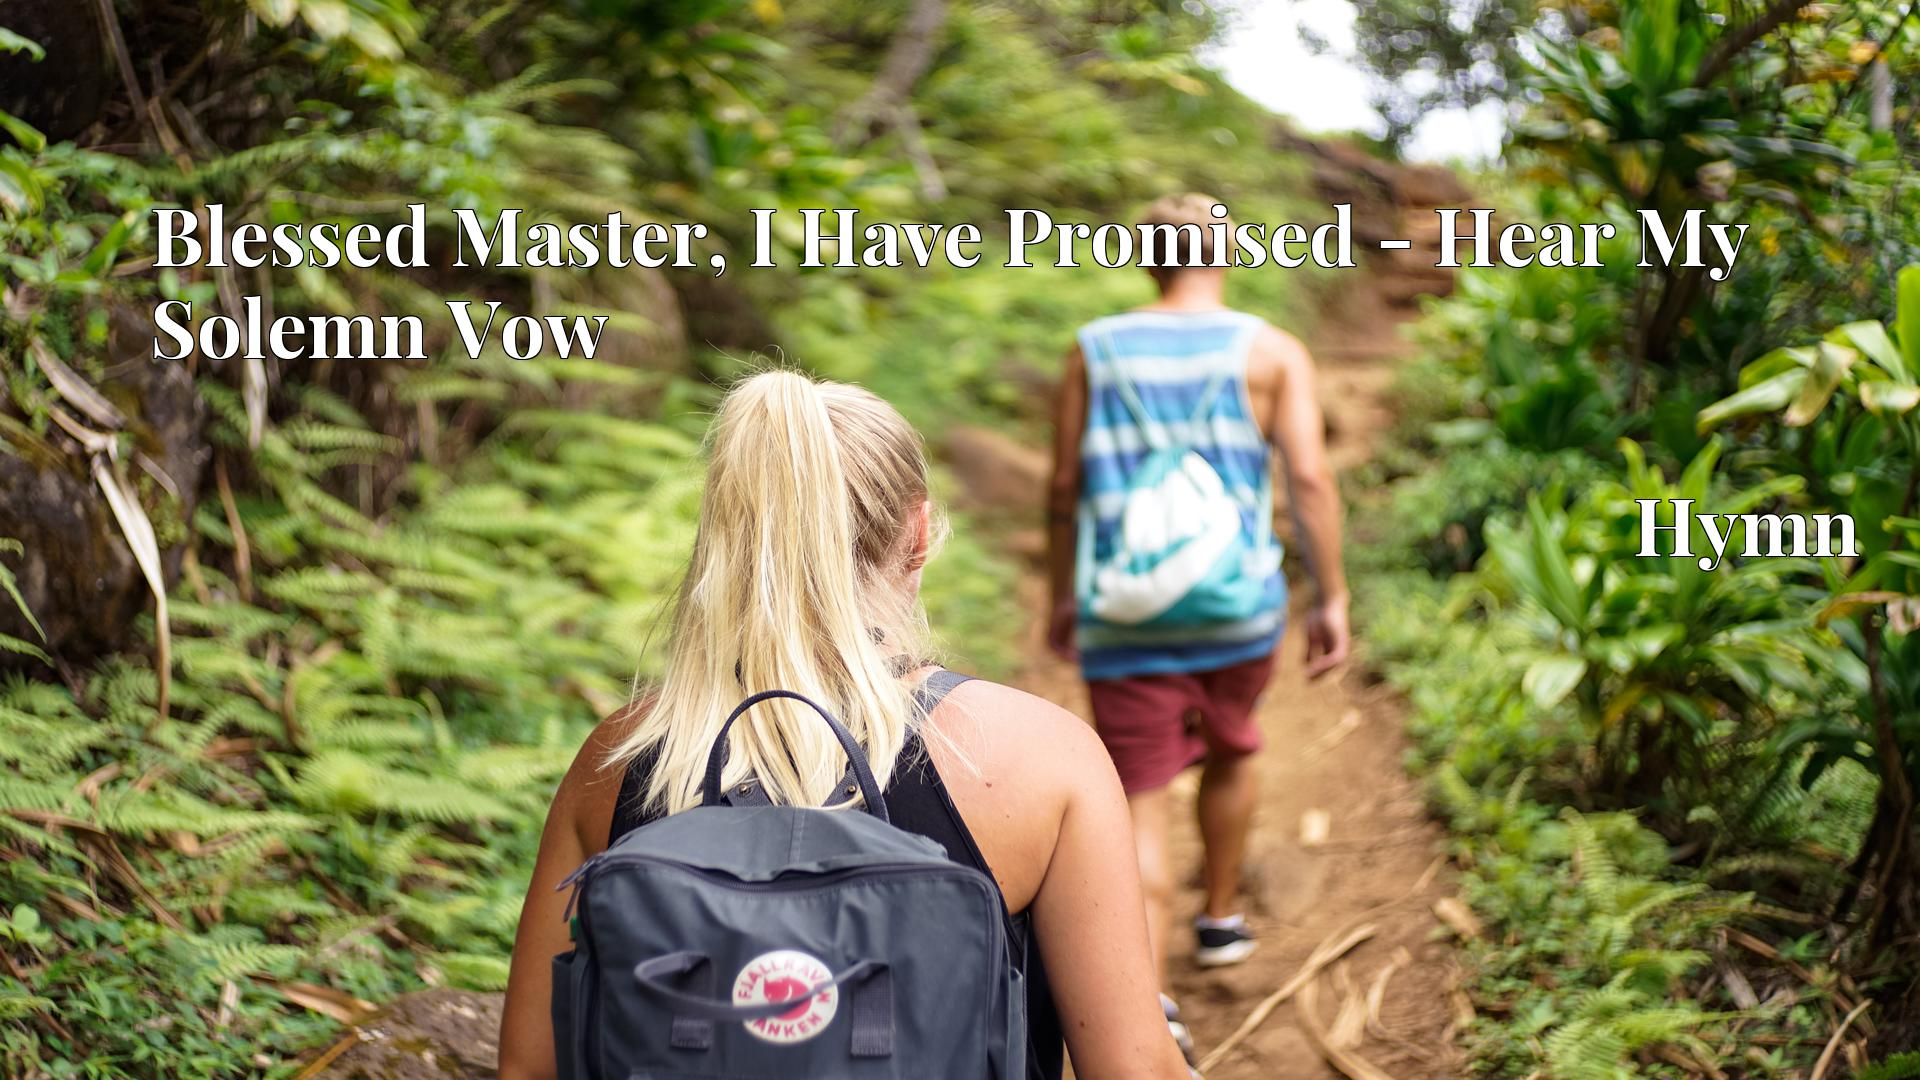 Blessed Master, I Have Promised - Hear My Solemn Vow Hymn